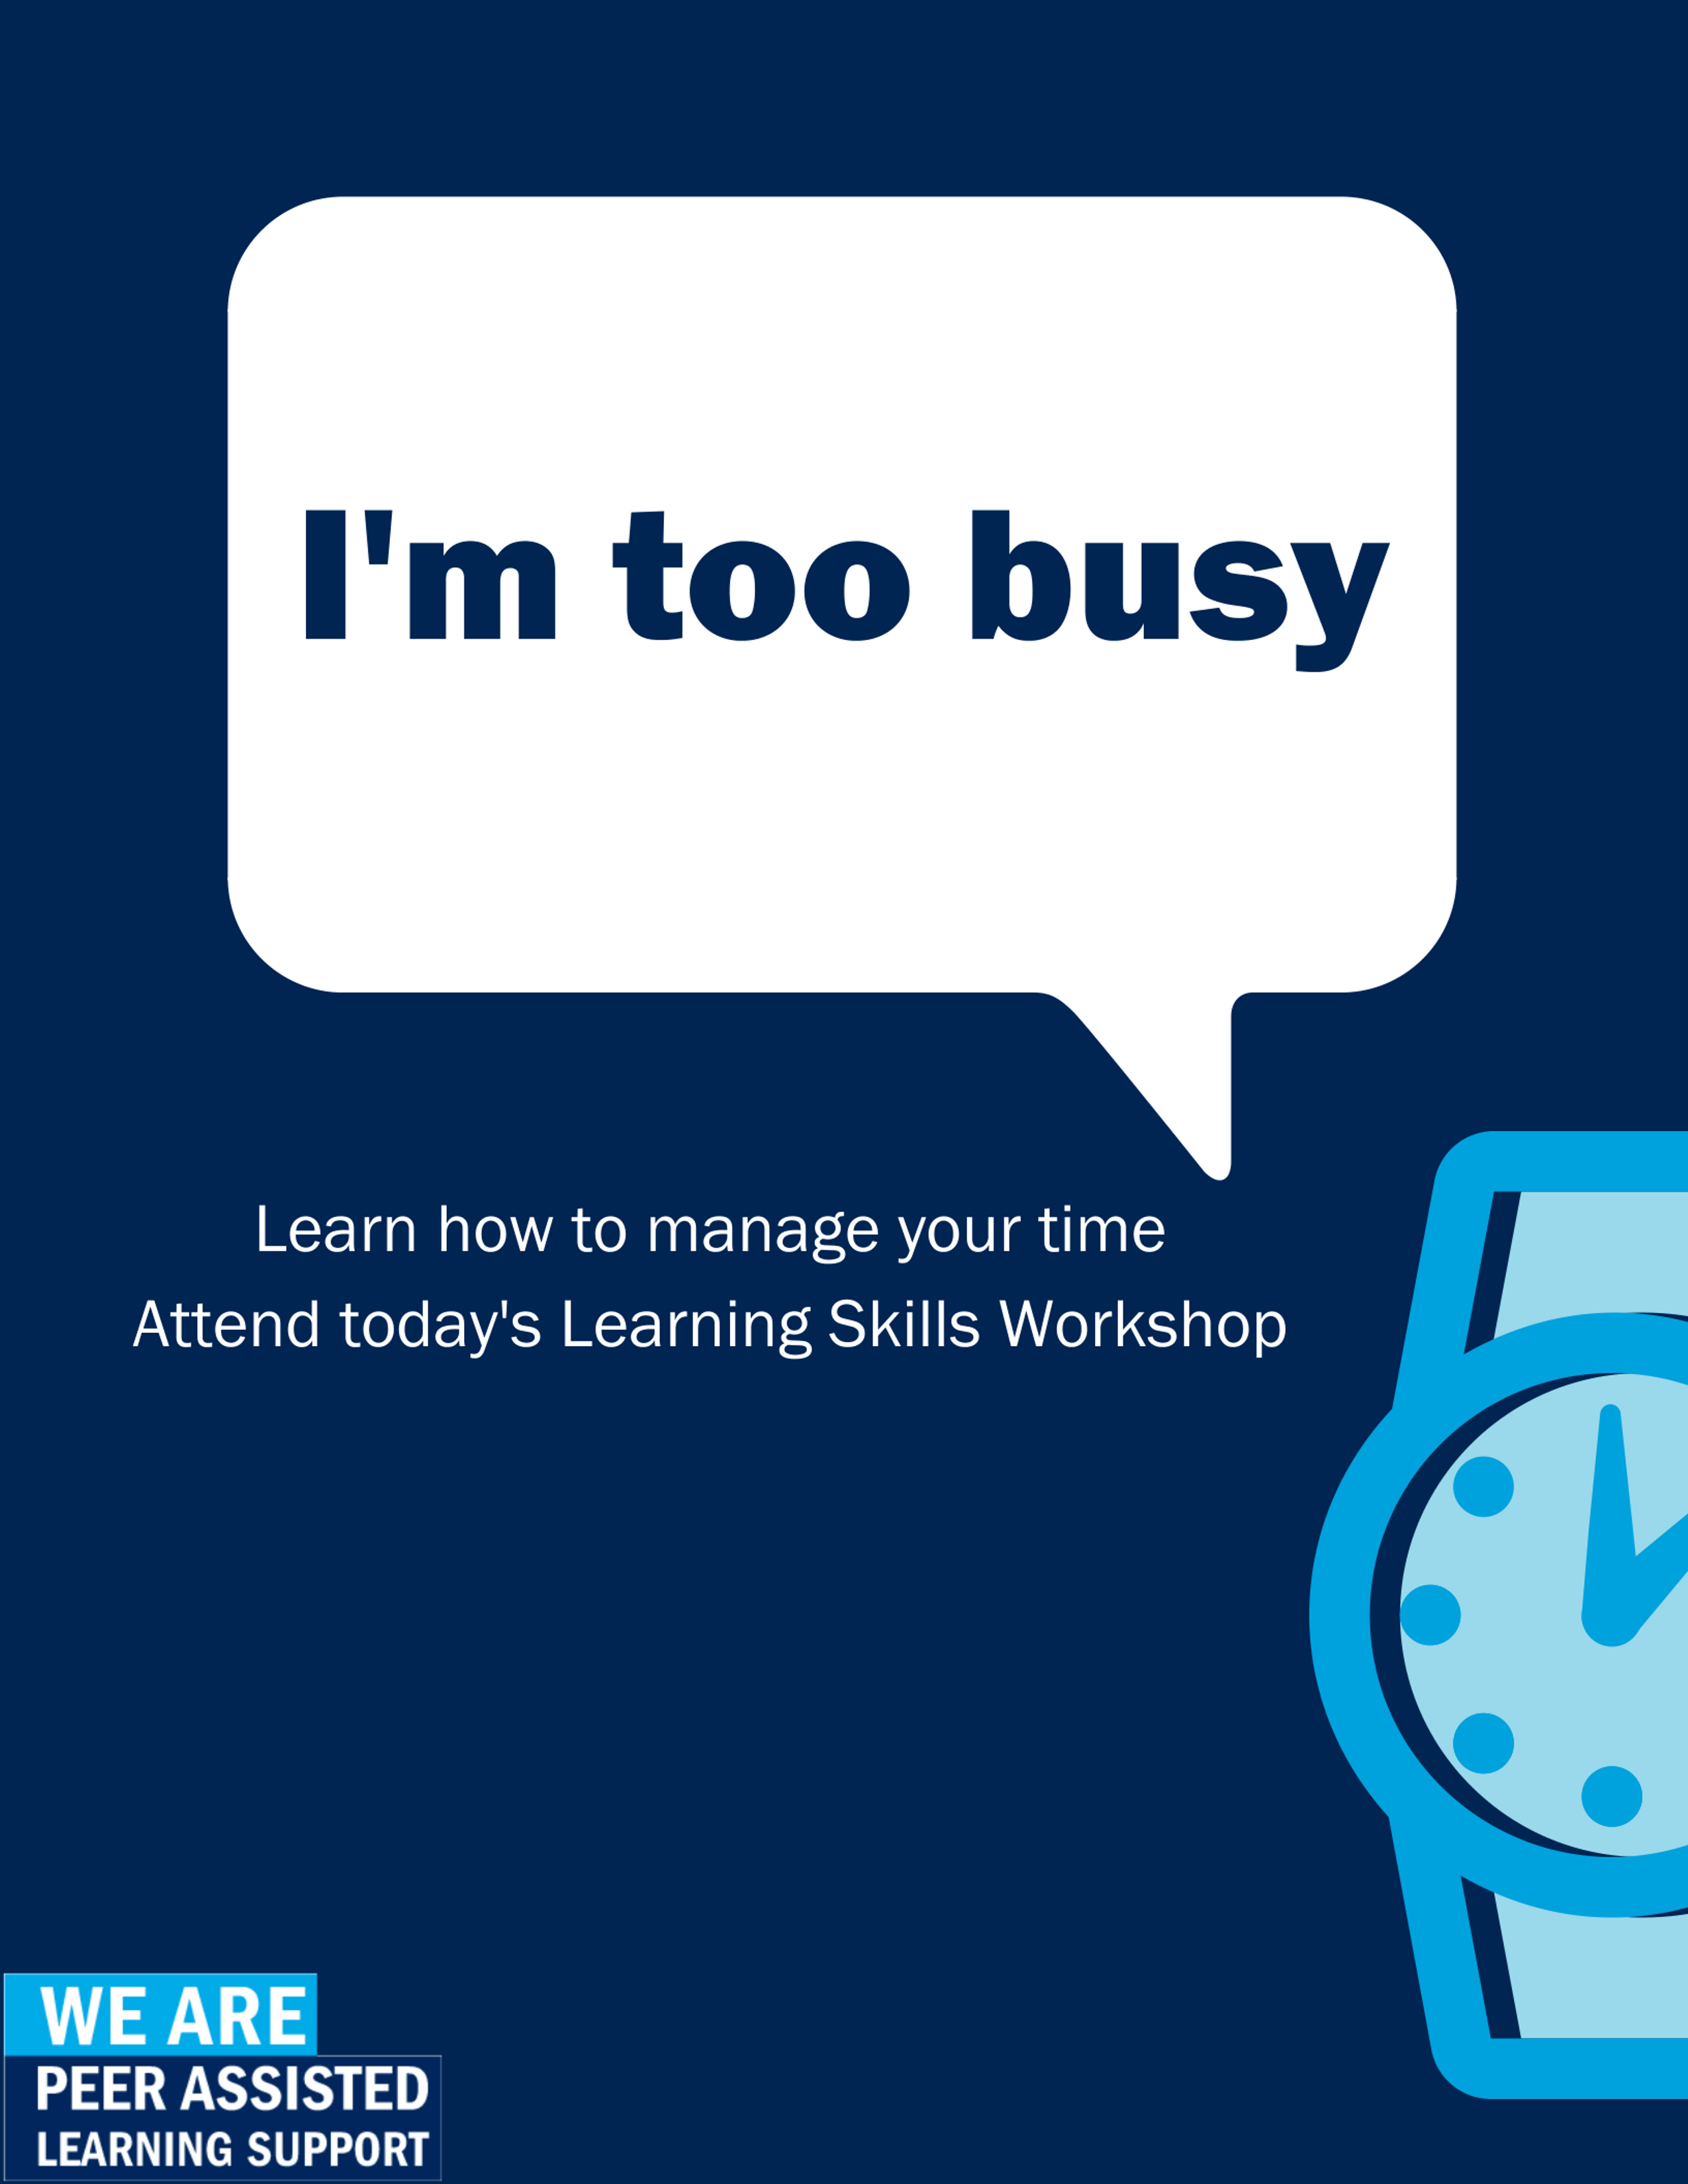 I'm too busy. Attend this workshop to learn how to manage your time.